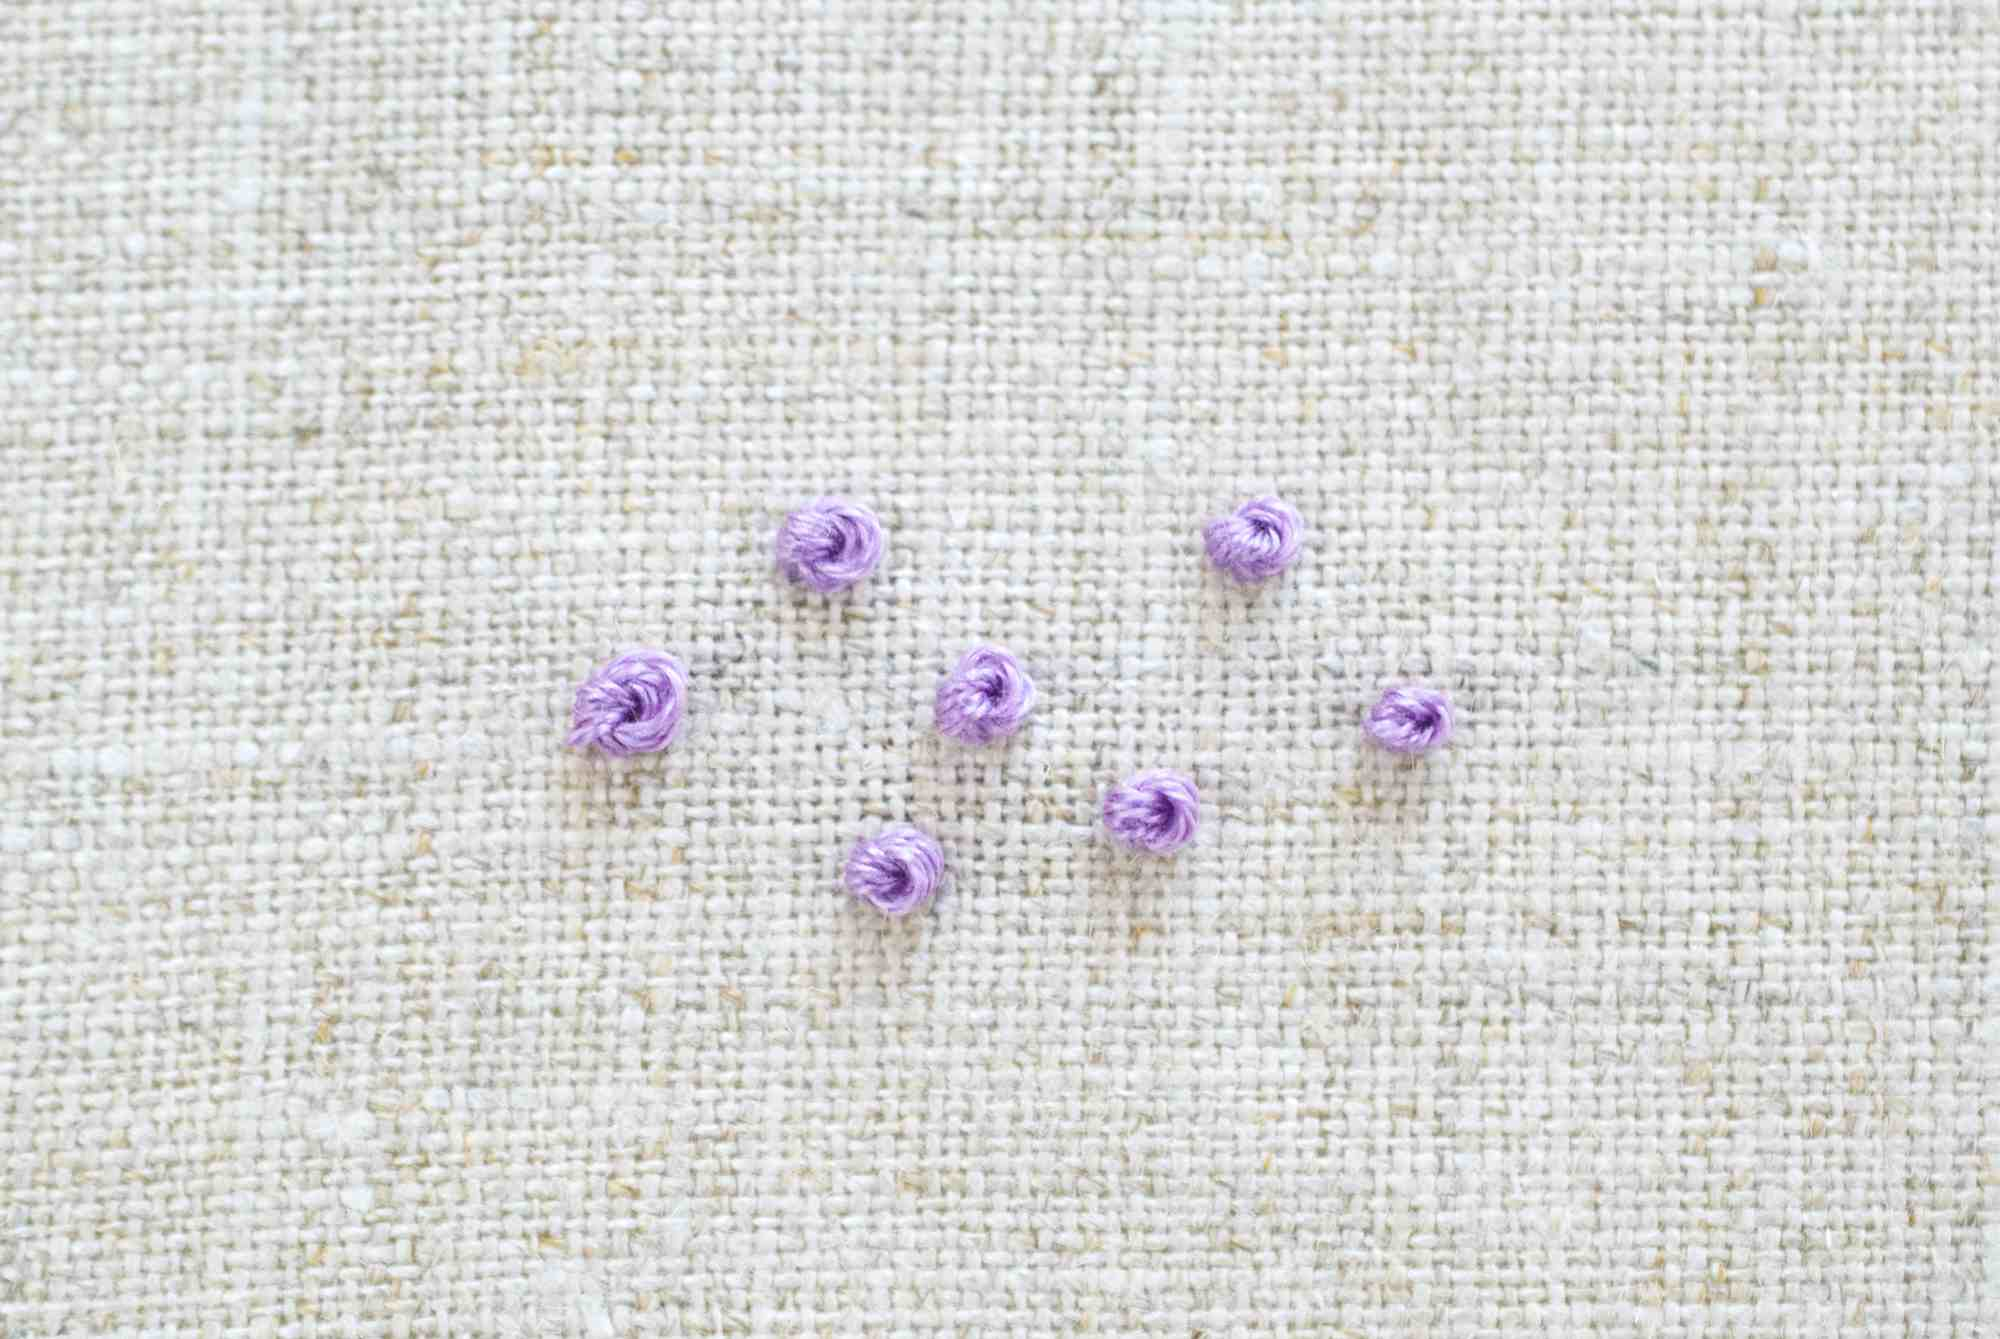 French Knot Example